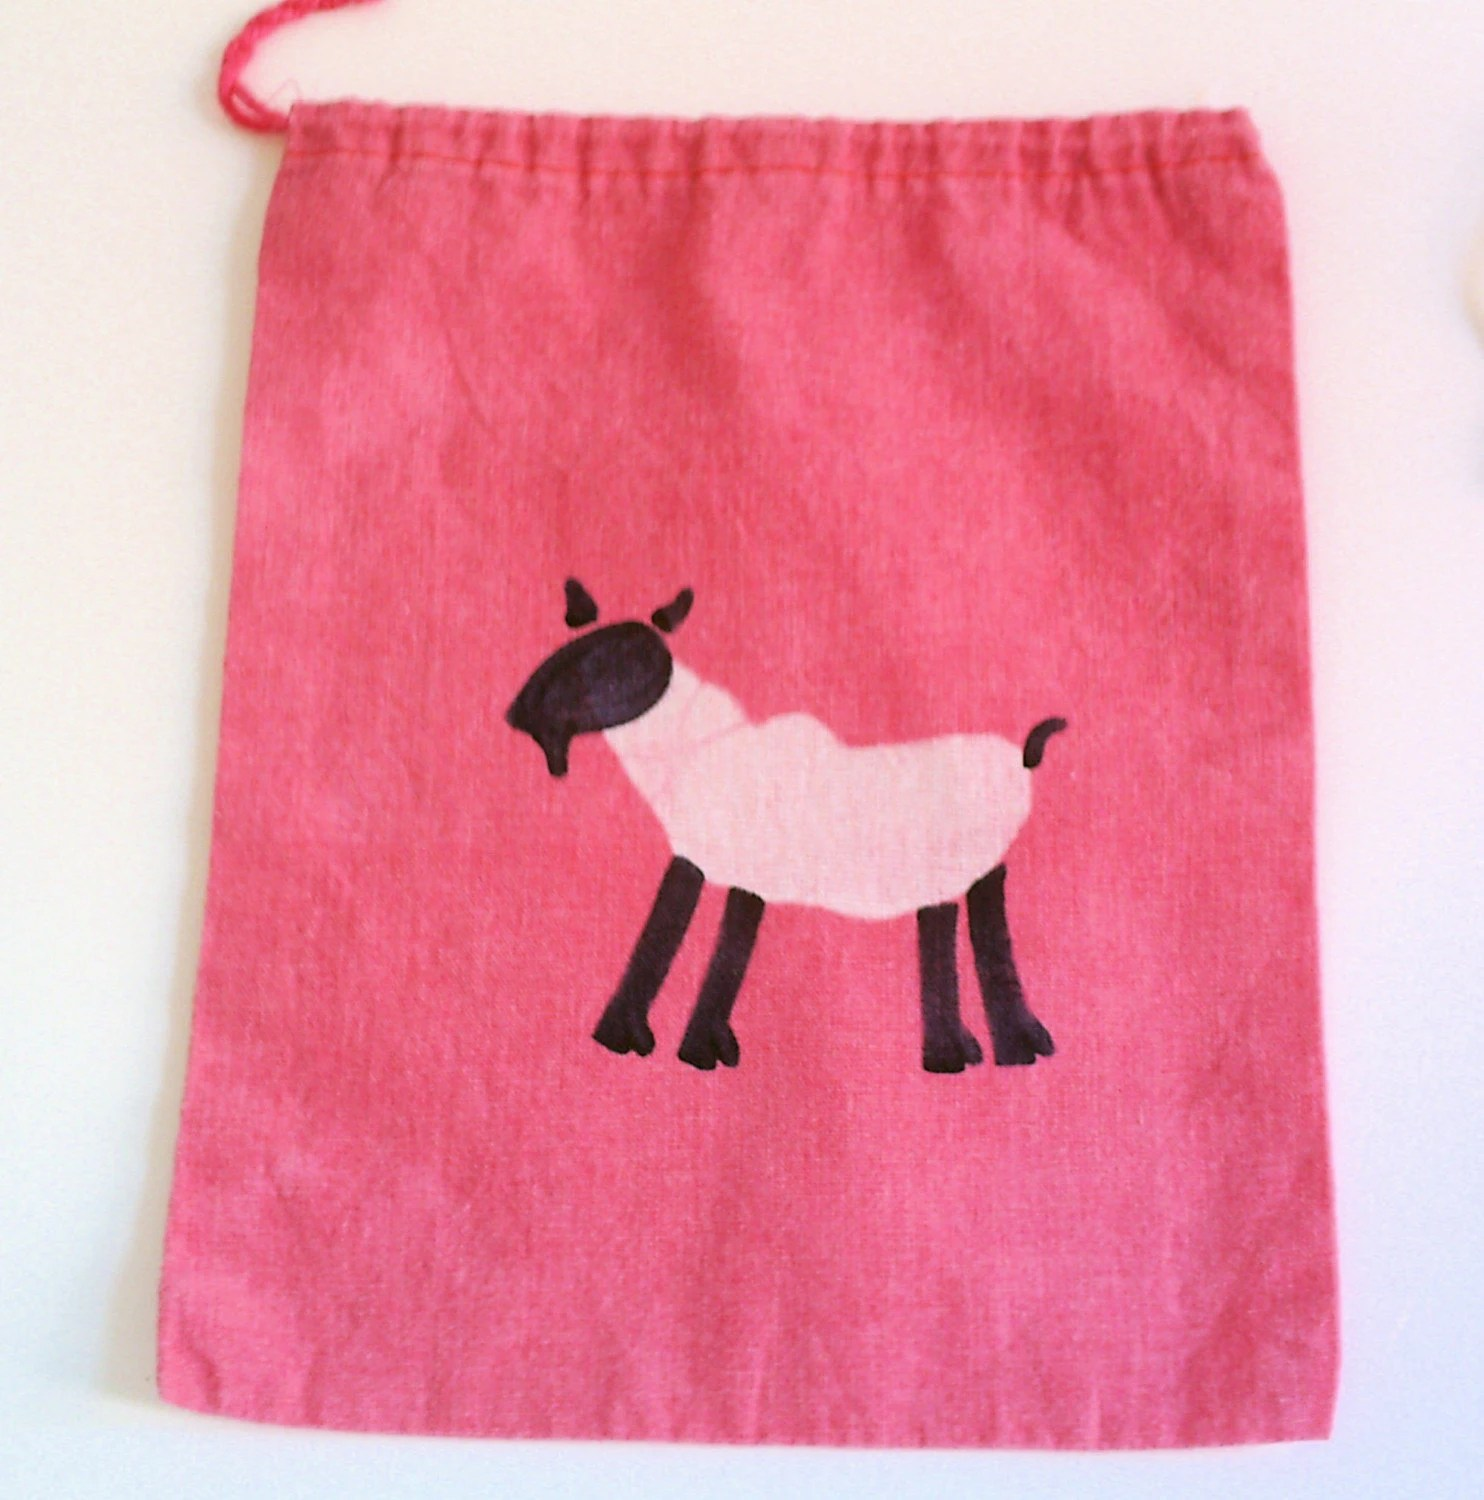 FREE SHIPPING batik GOAT mini project or notion drawstring bag NO TEXT